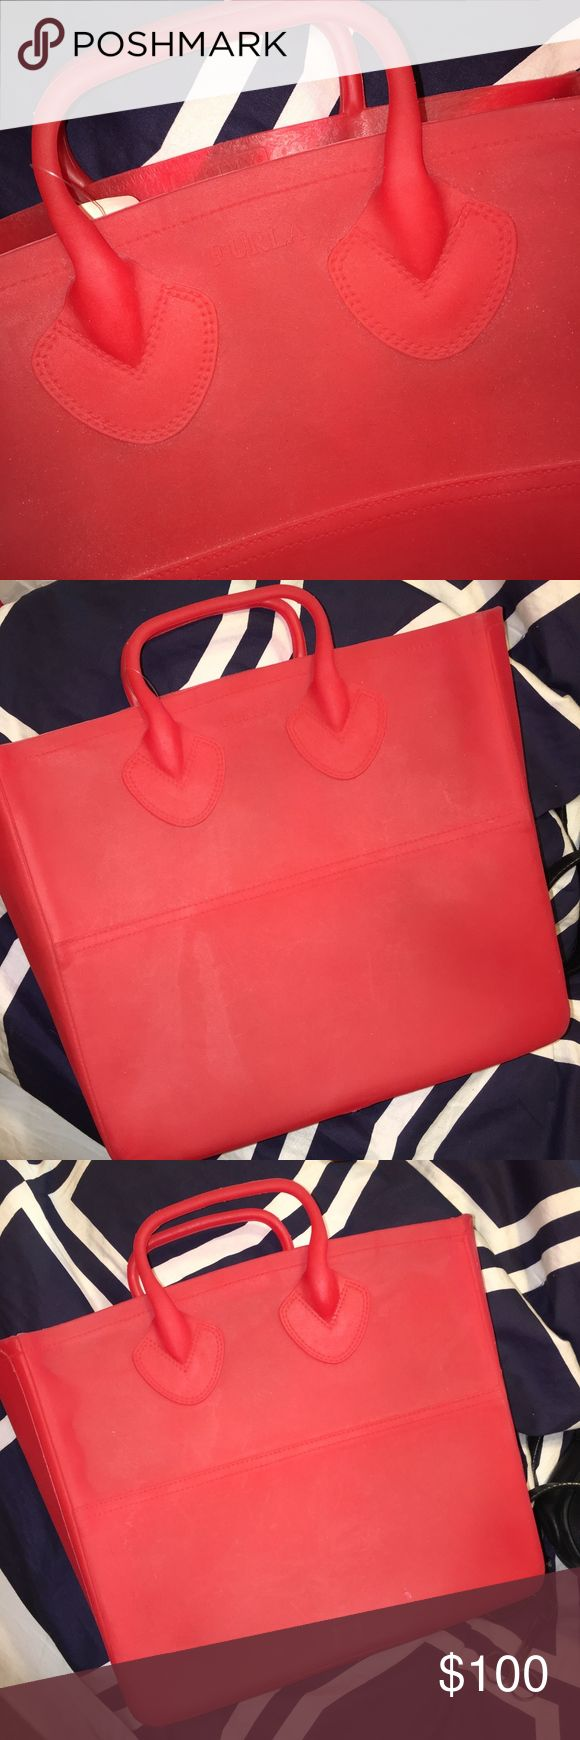 NWT FURLA GUMMY cherry red rubber tote Received this bag as a gift. I'm a big Wisconsin Badger fan so it's only natural I get lots of red accessories :) Anyways, I never used it. It's rubber. Definitely durable. The Saks tag is still attached. A perfect pop of color for any season! Furla Bags Totes